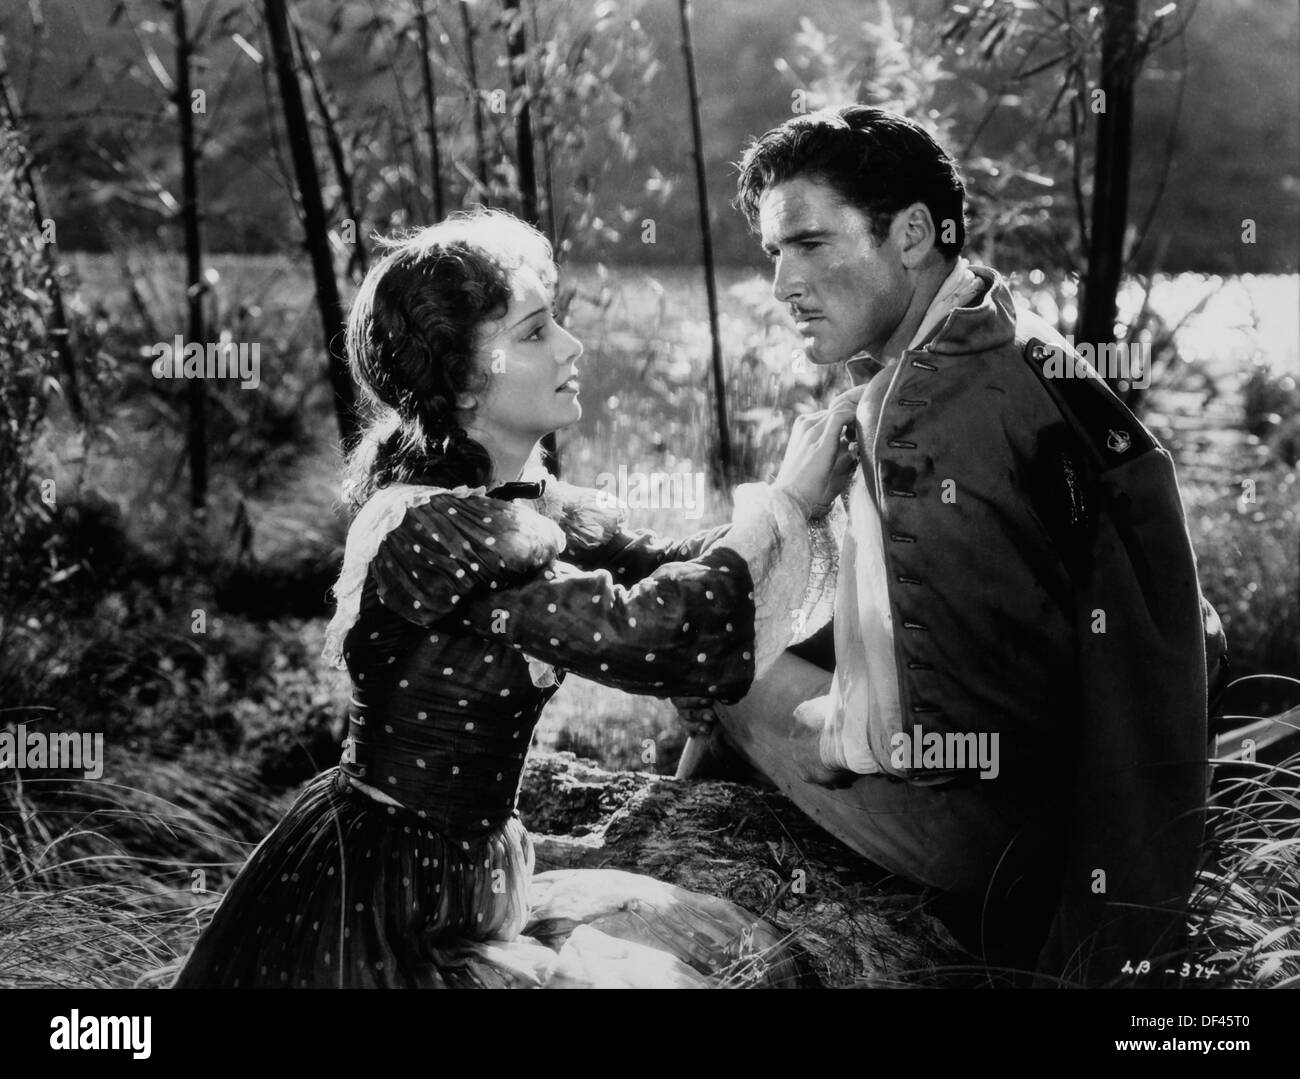 Olivia de Havilland and Errol Flynn, On-Set of the Film, 'The Charge of the Light Brigade', 1936 - Stock Image